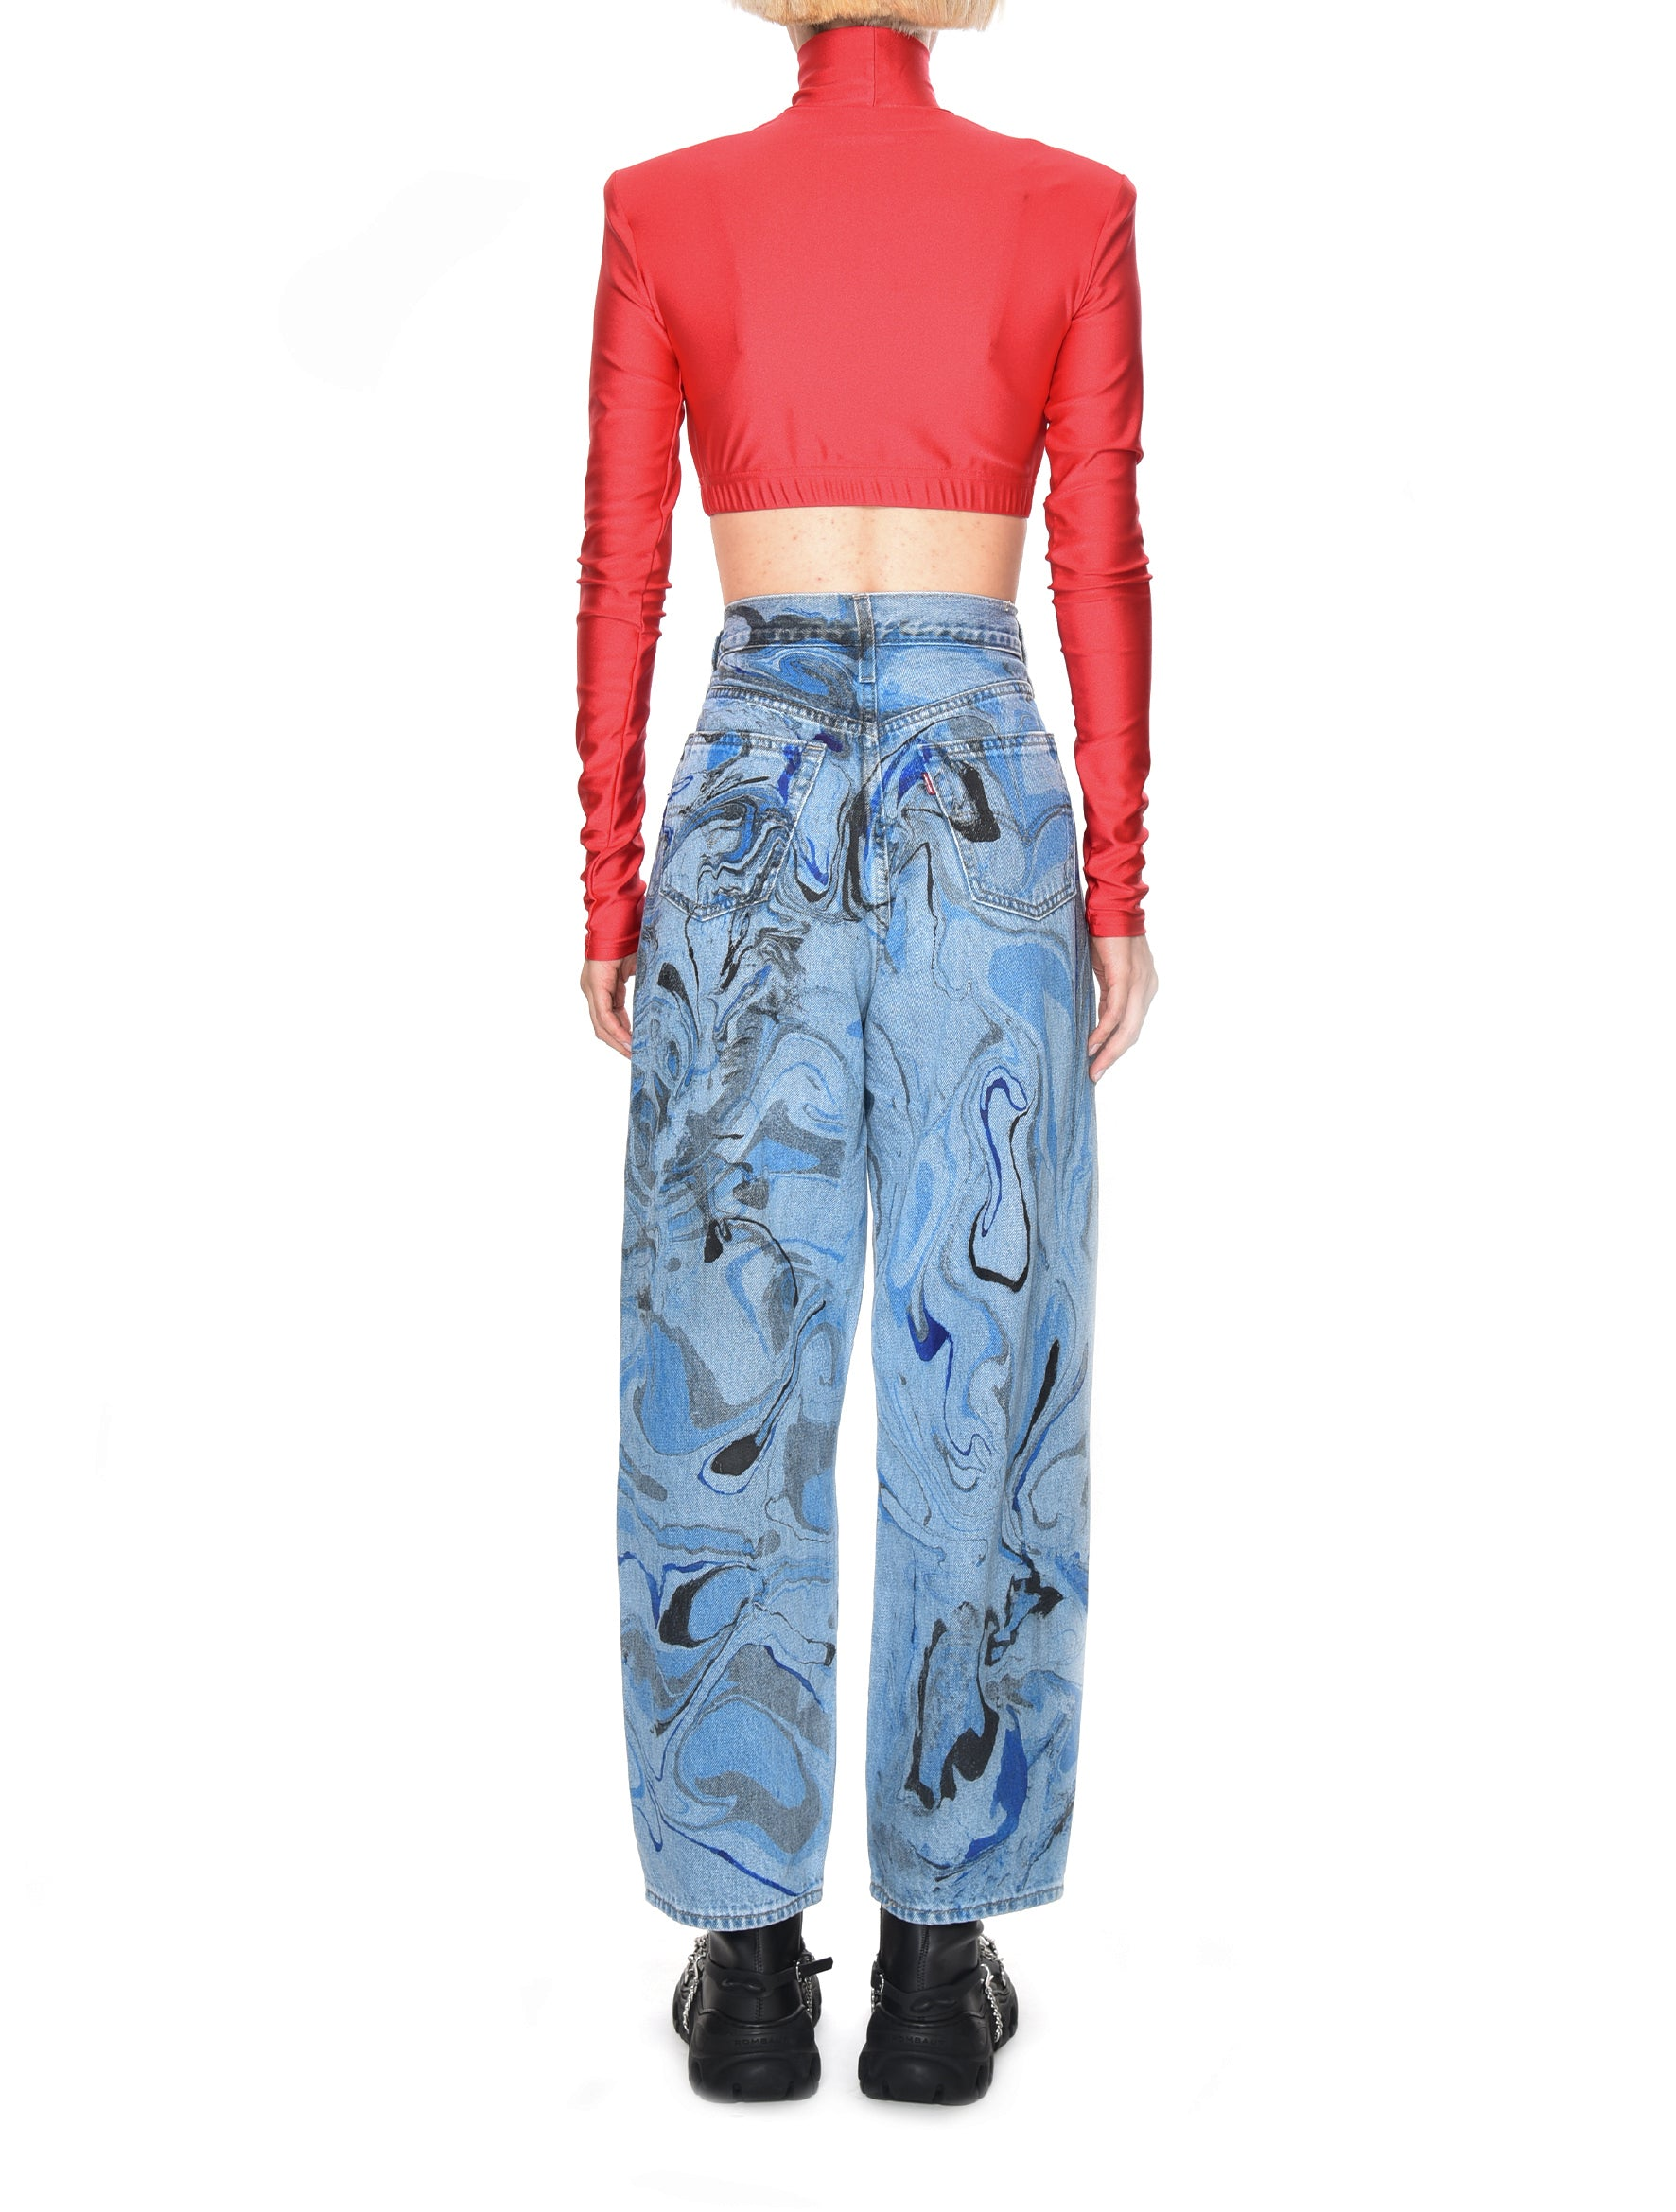 Neith Nyer Reworked Marble Denim Jeans